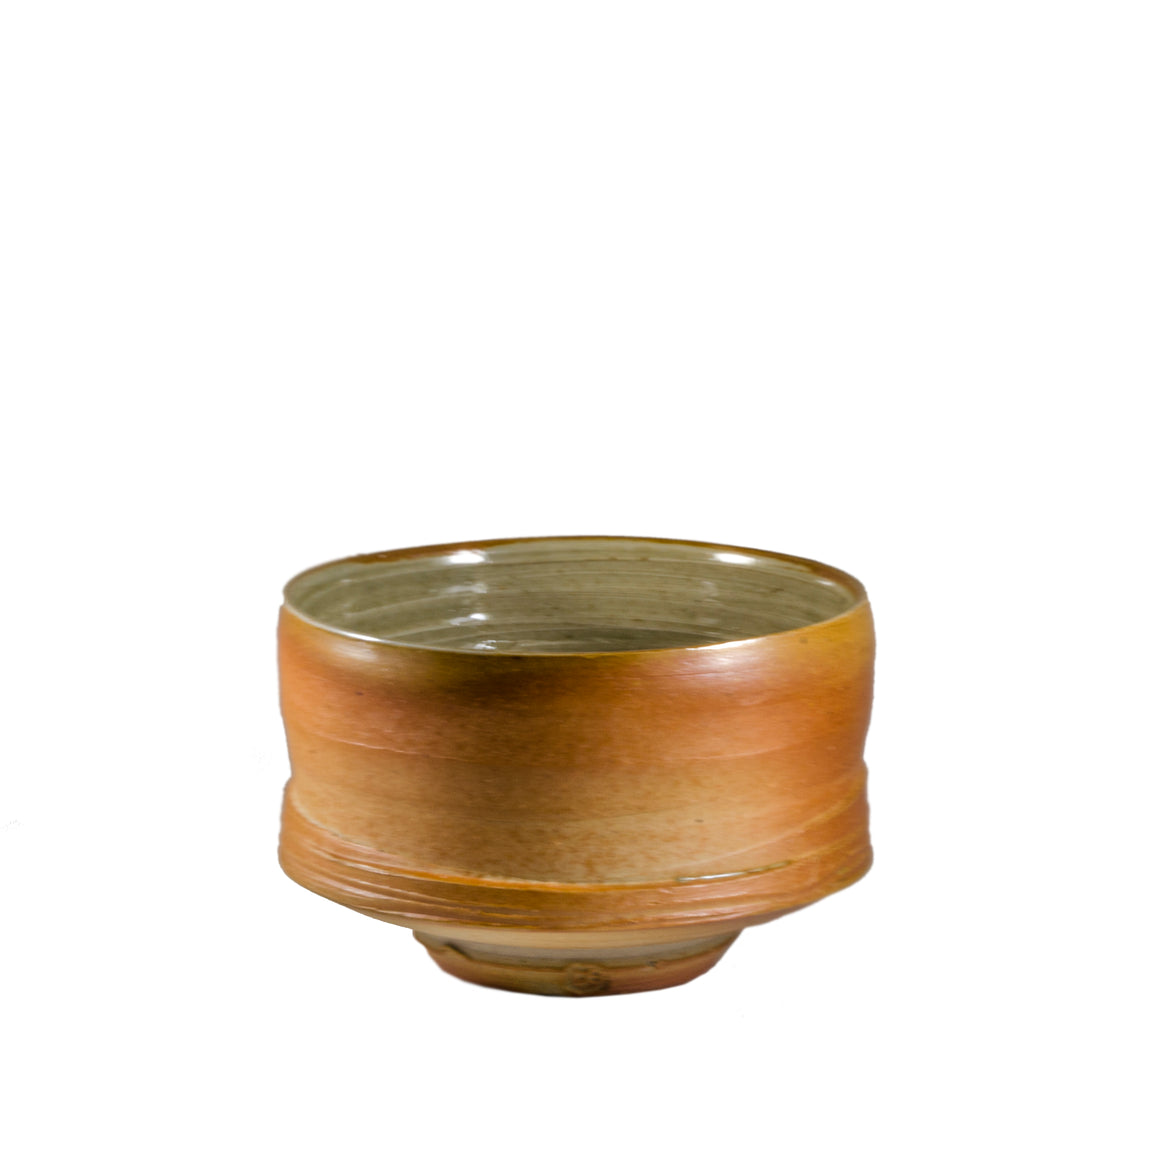 Chawan Matcha Bowl by Mary Dye - Todd & Holland Tea Merchants